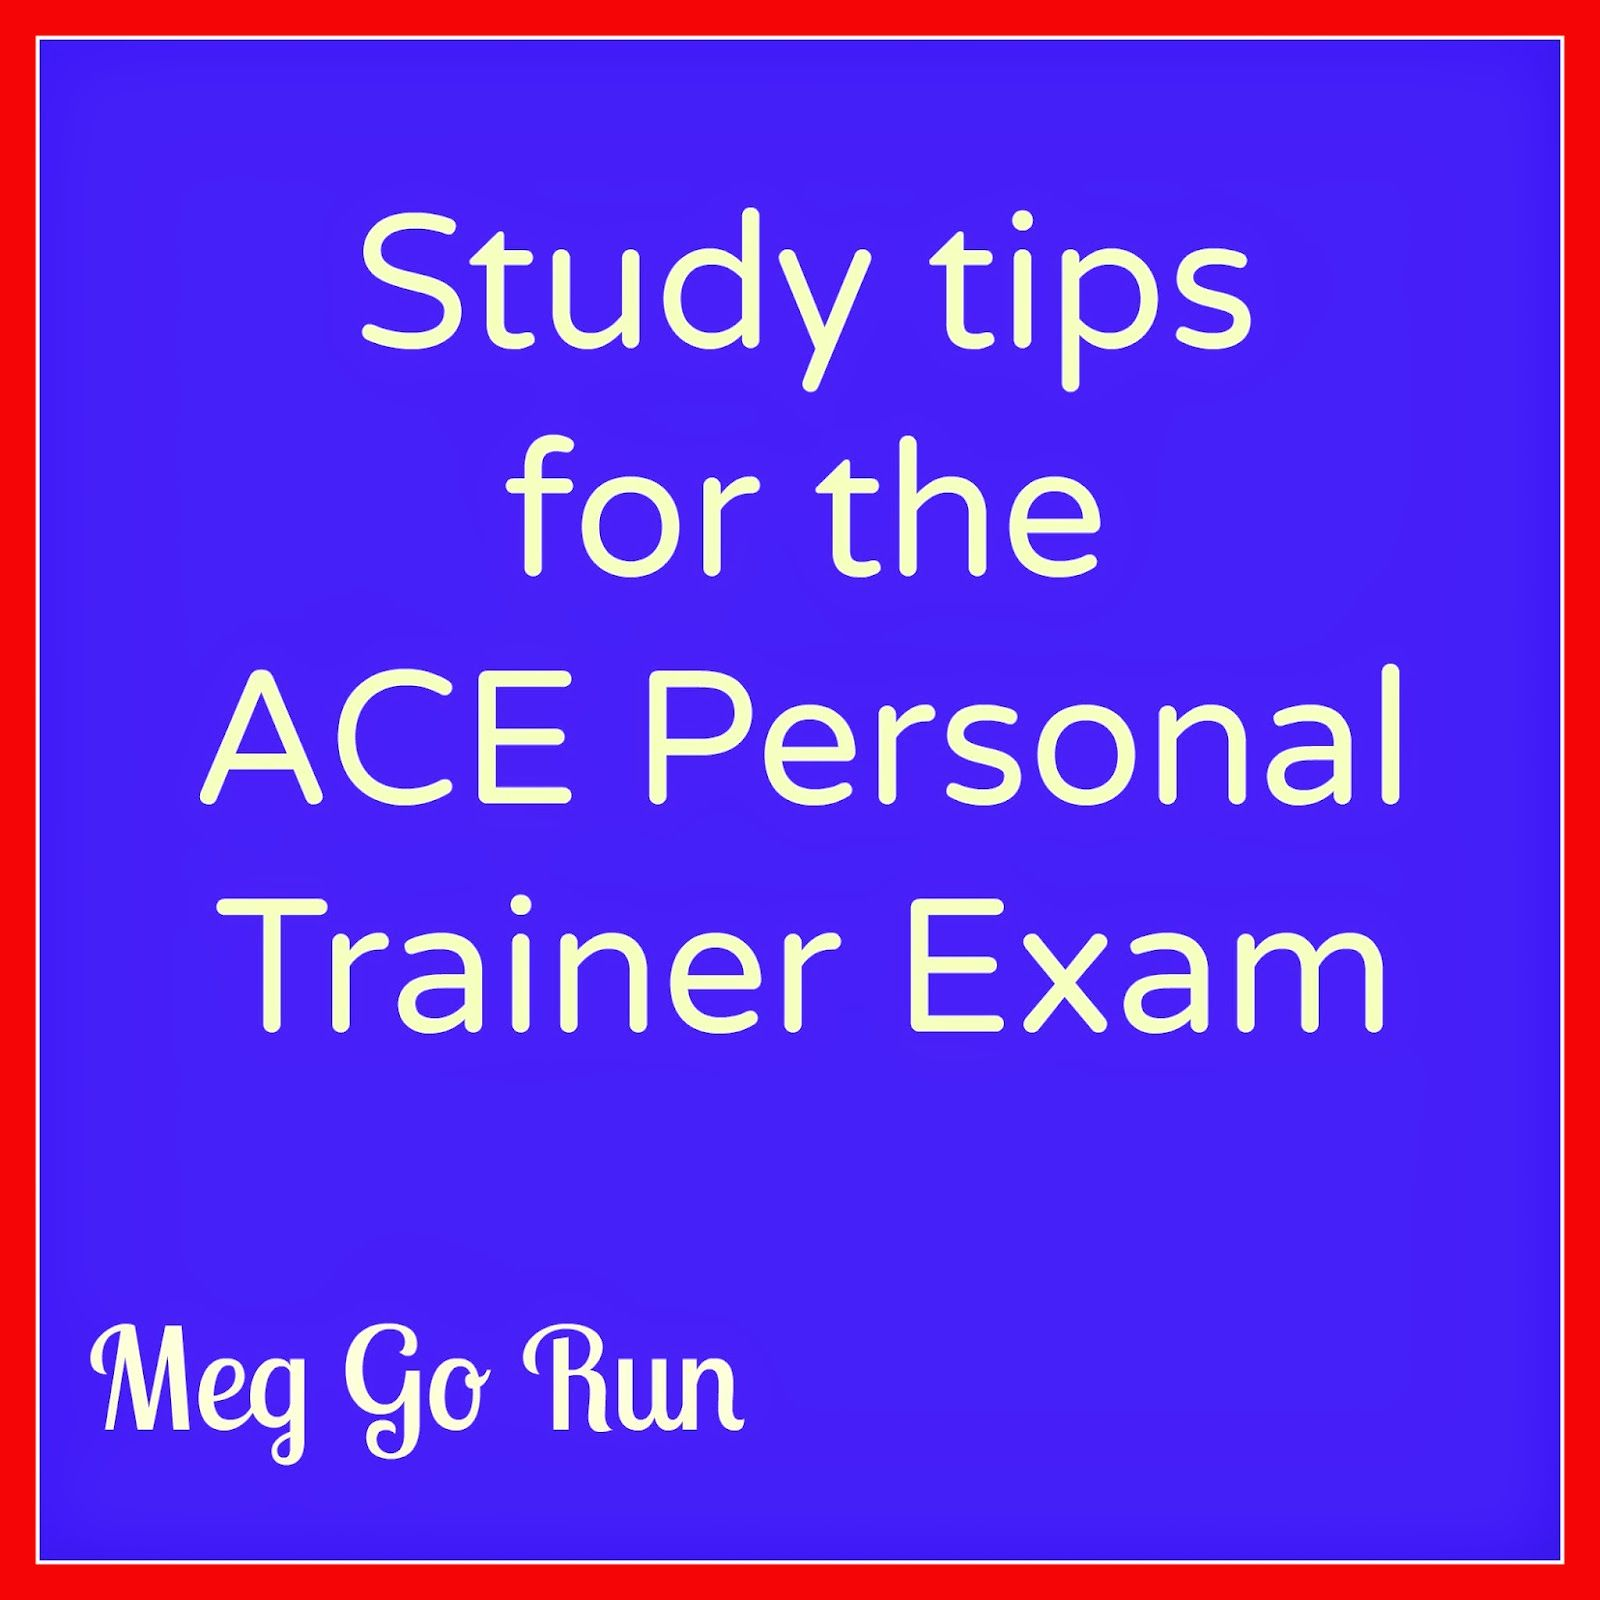 Study Tips for the ACE Personal Trainer Exam. Life coach